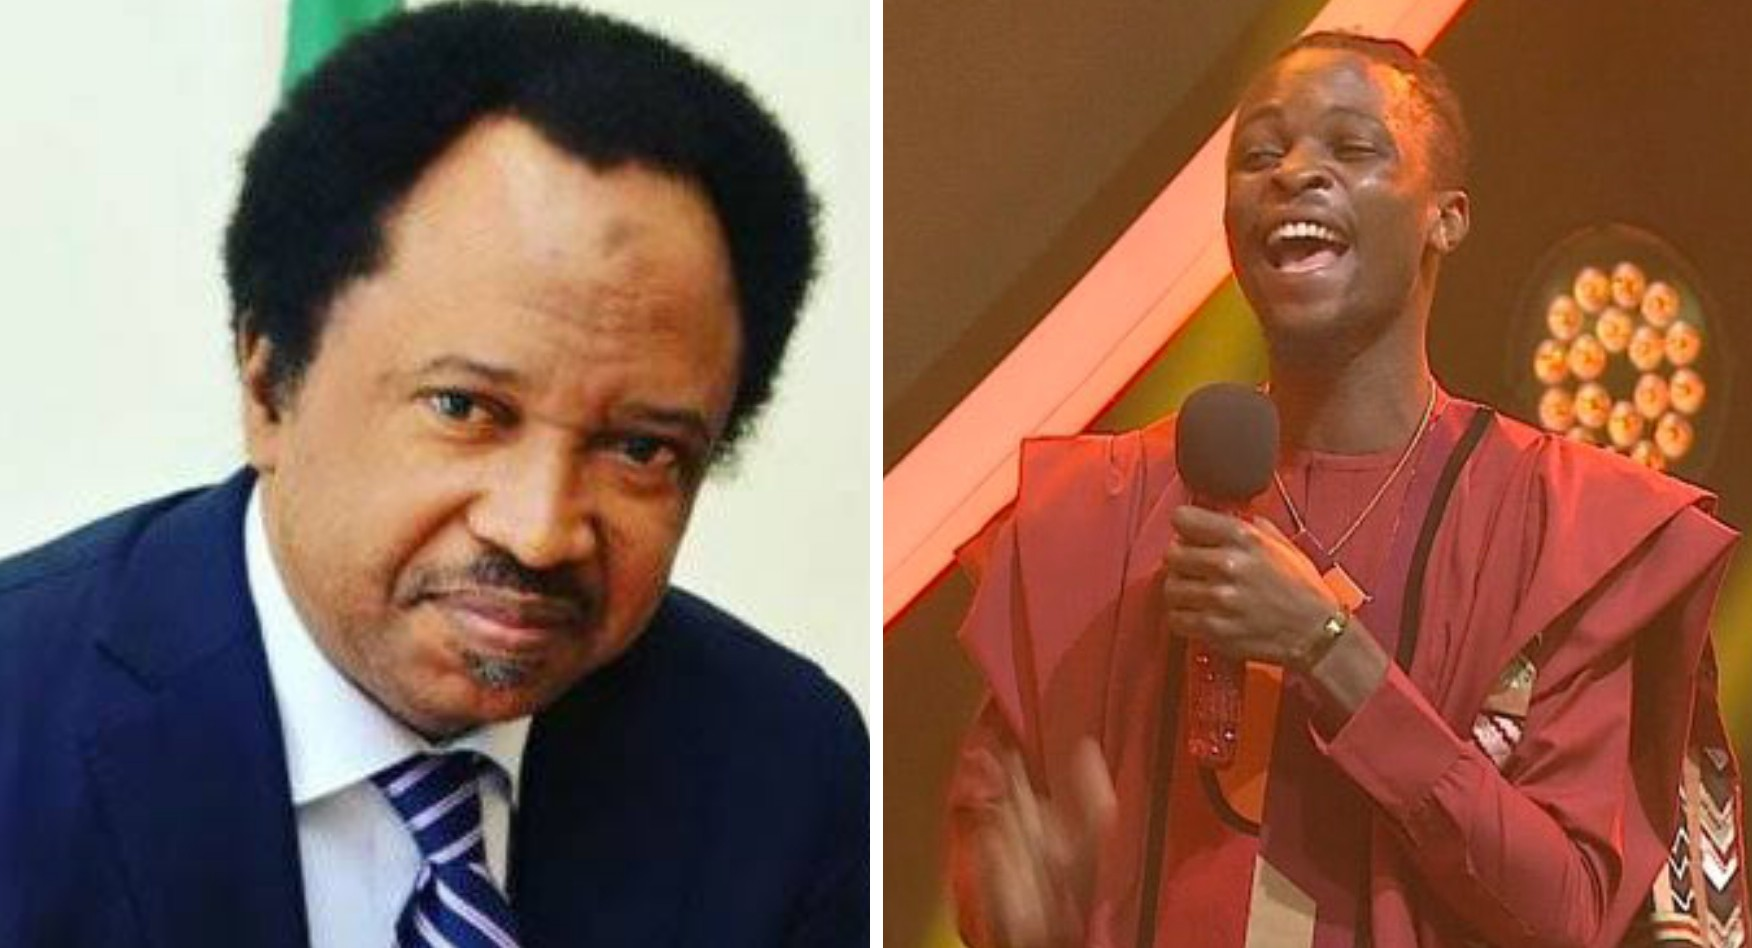 BBNaija 2020: Viewers can now join NLC protests – Shehu Sani reacts as Laycon wins show